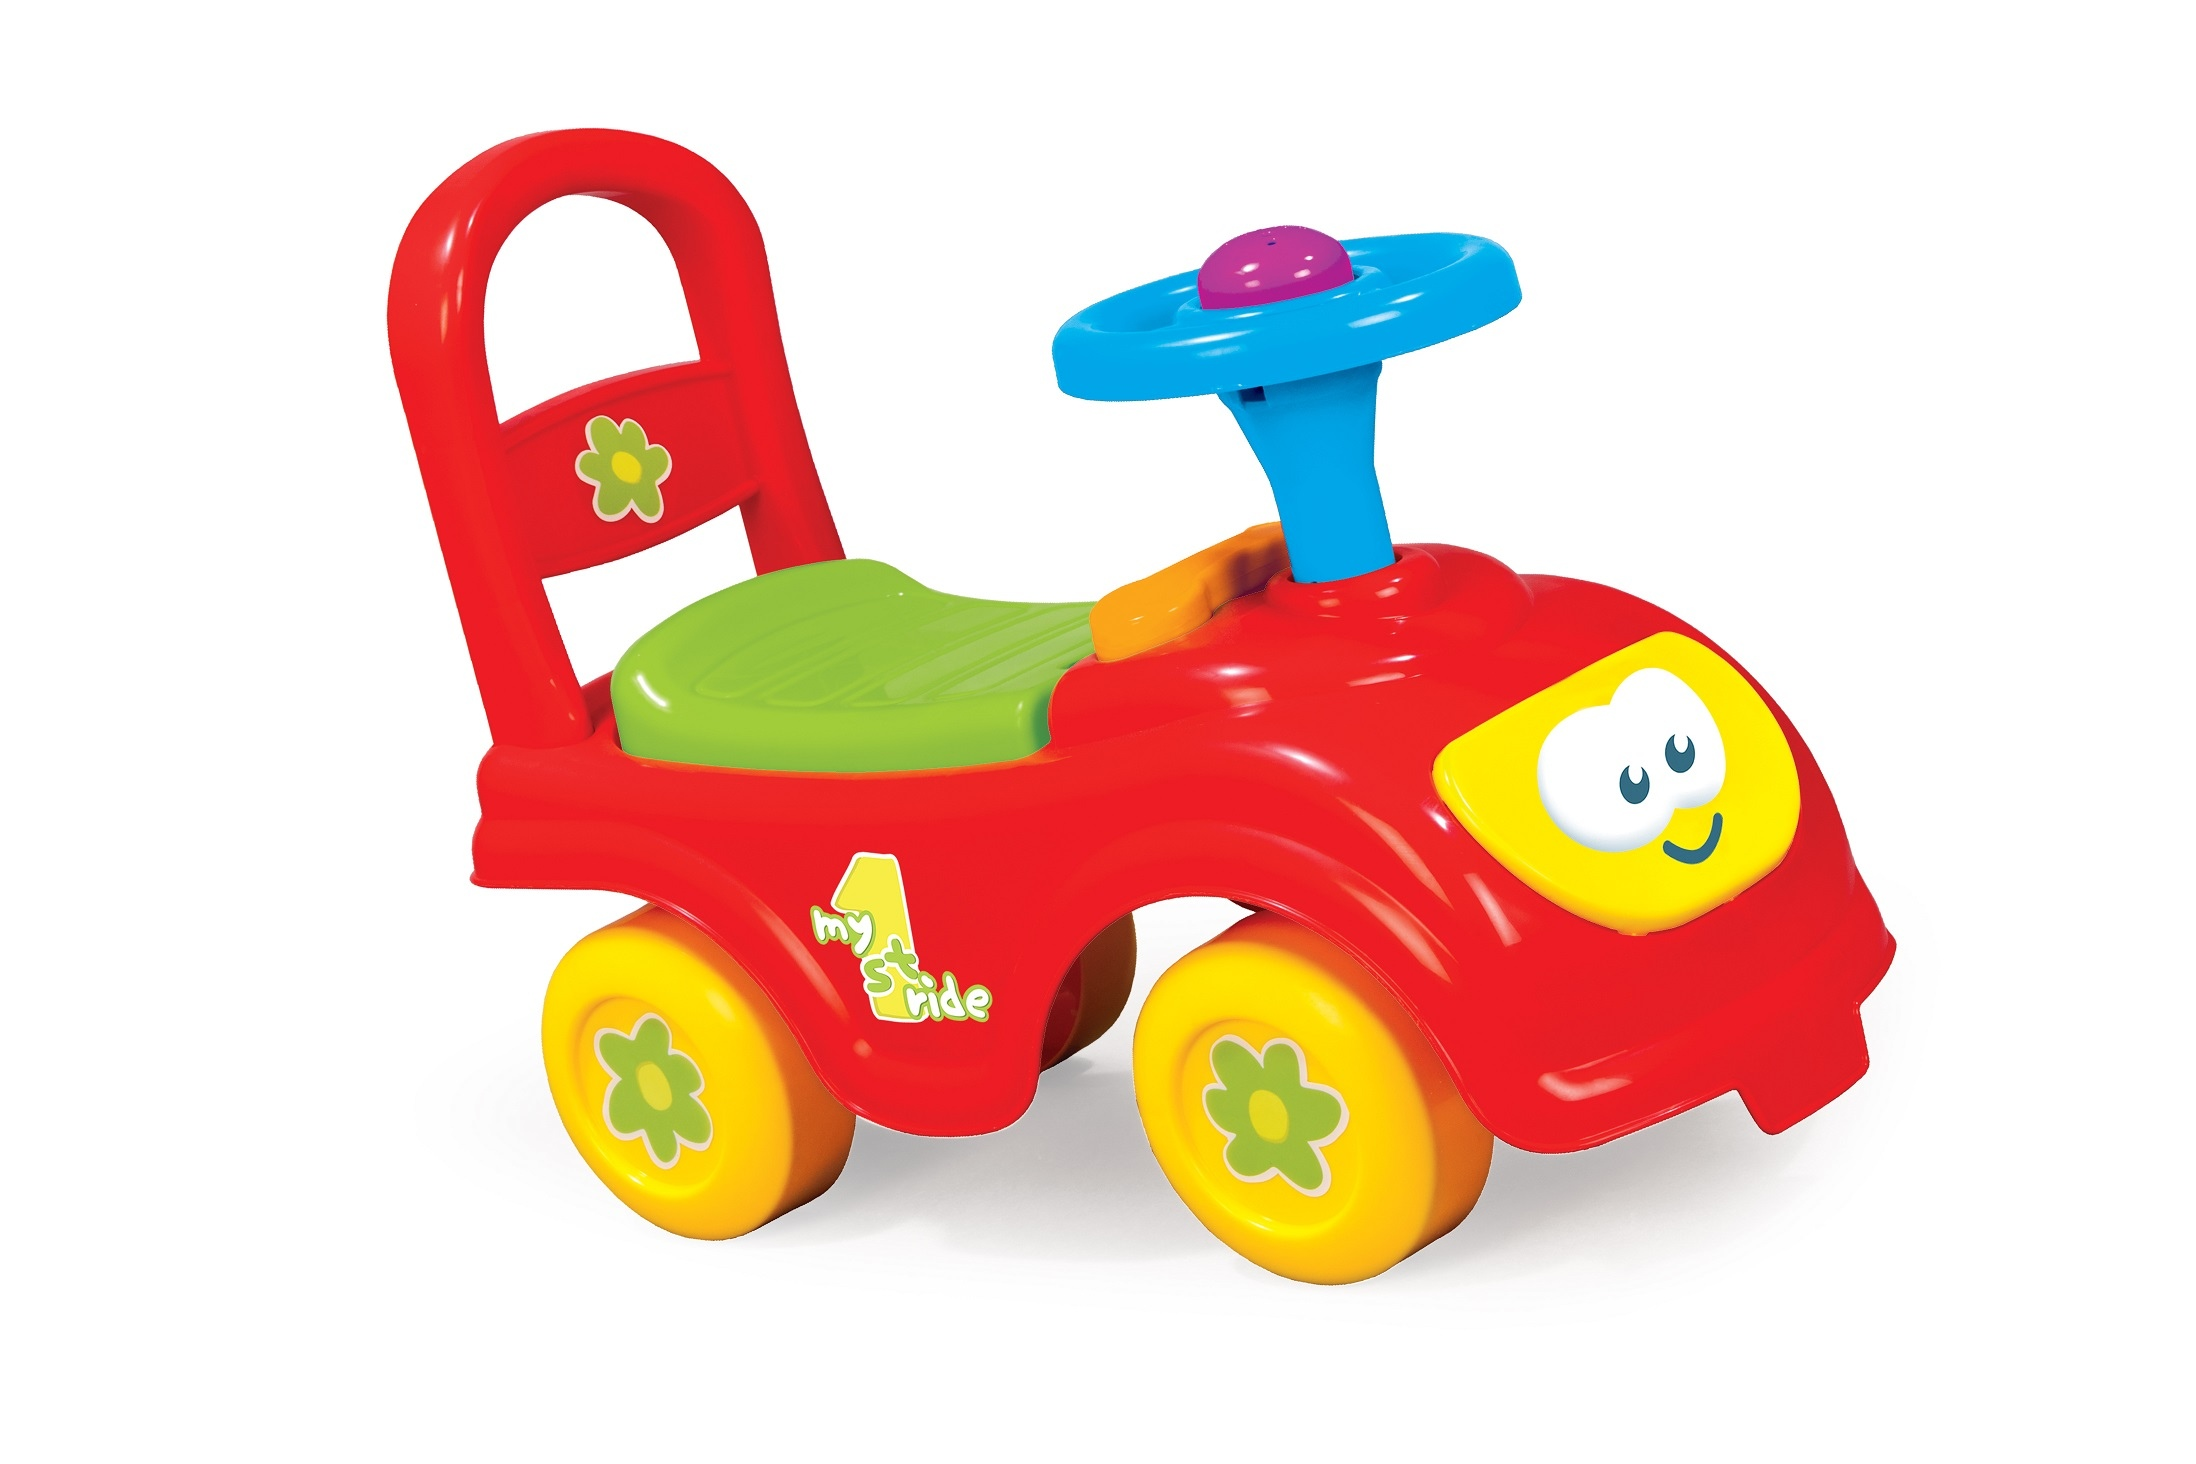 Toddler Toys Cars : My first ride on kids toy cars boys girls push along